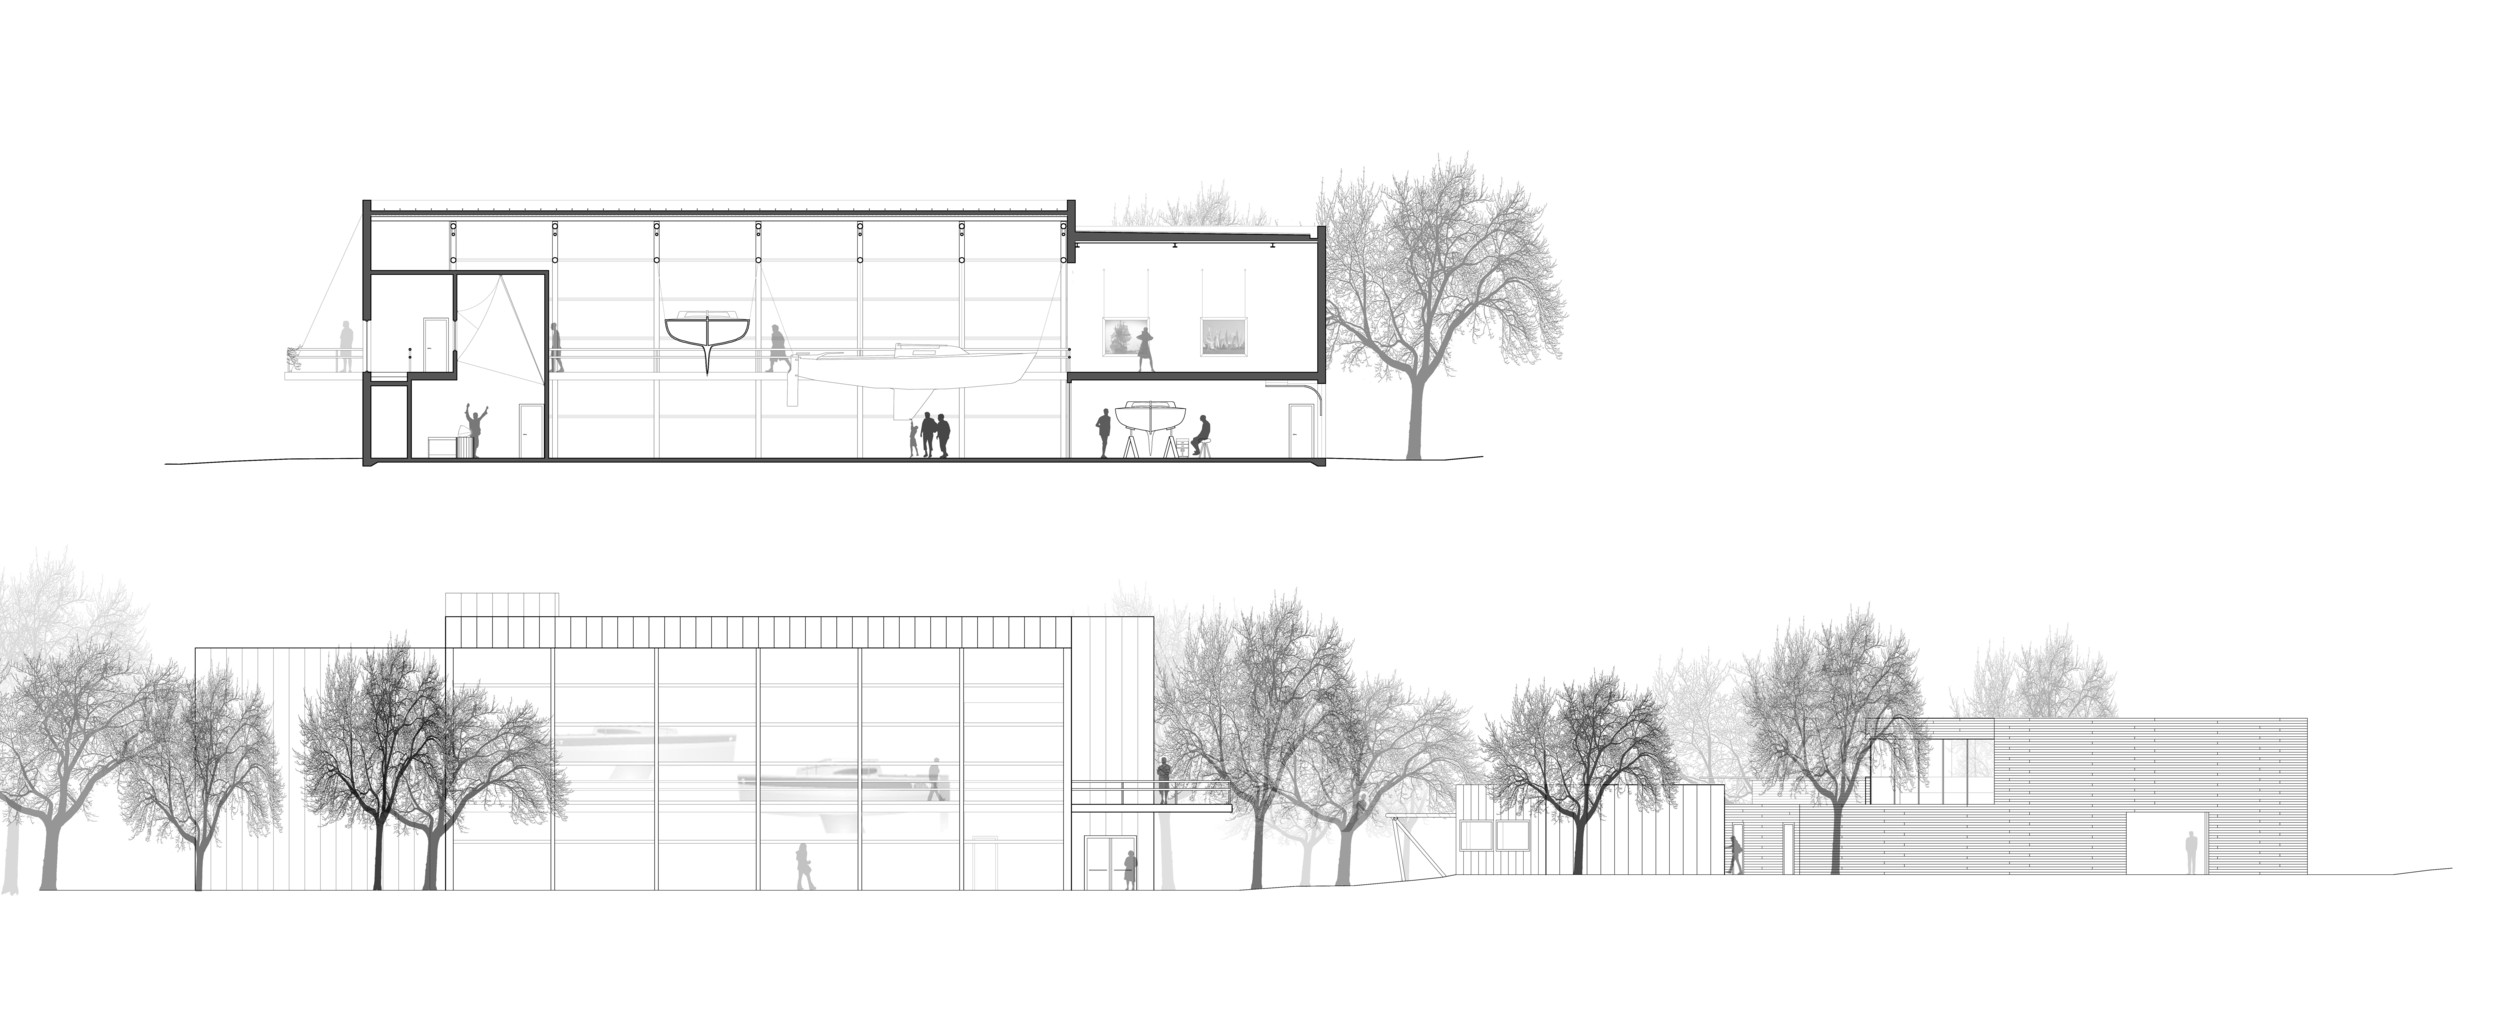 Building Section & Elevation